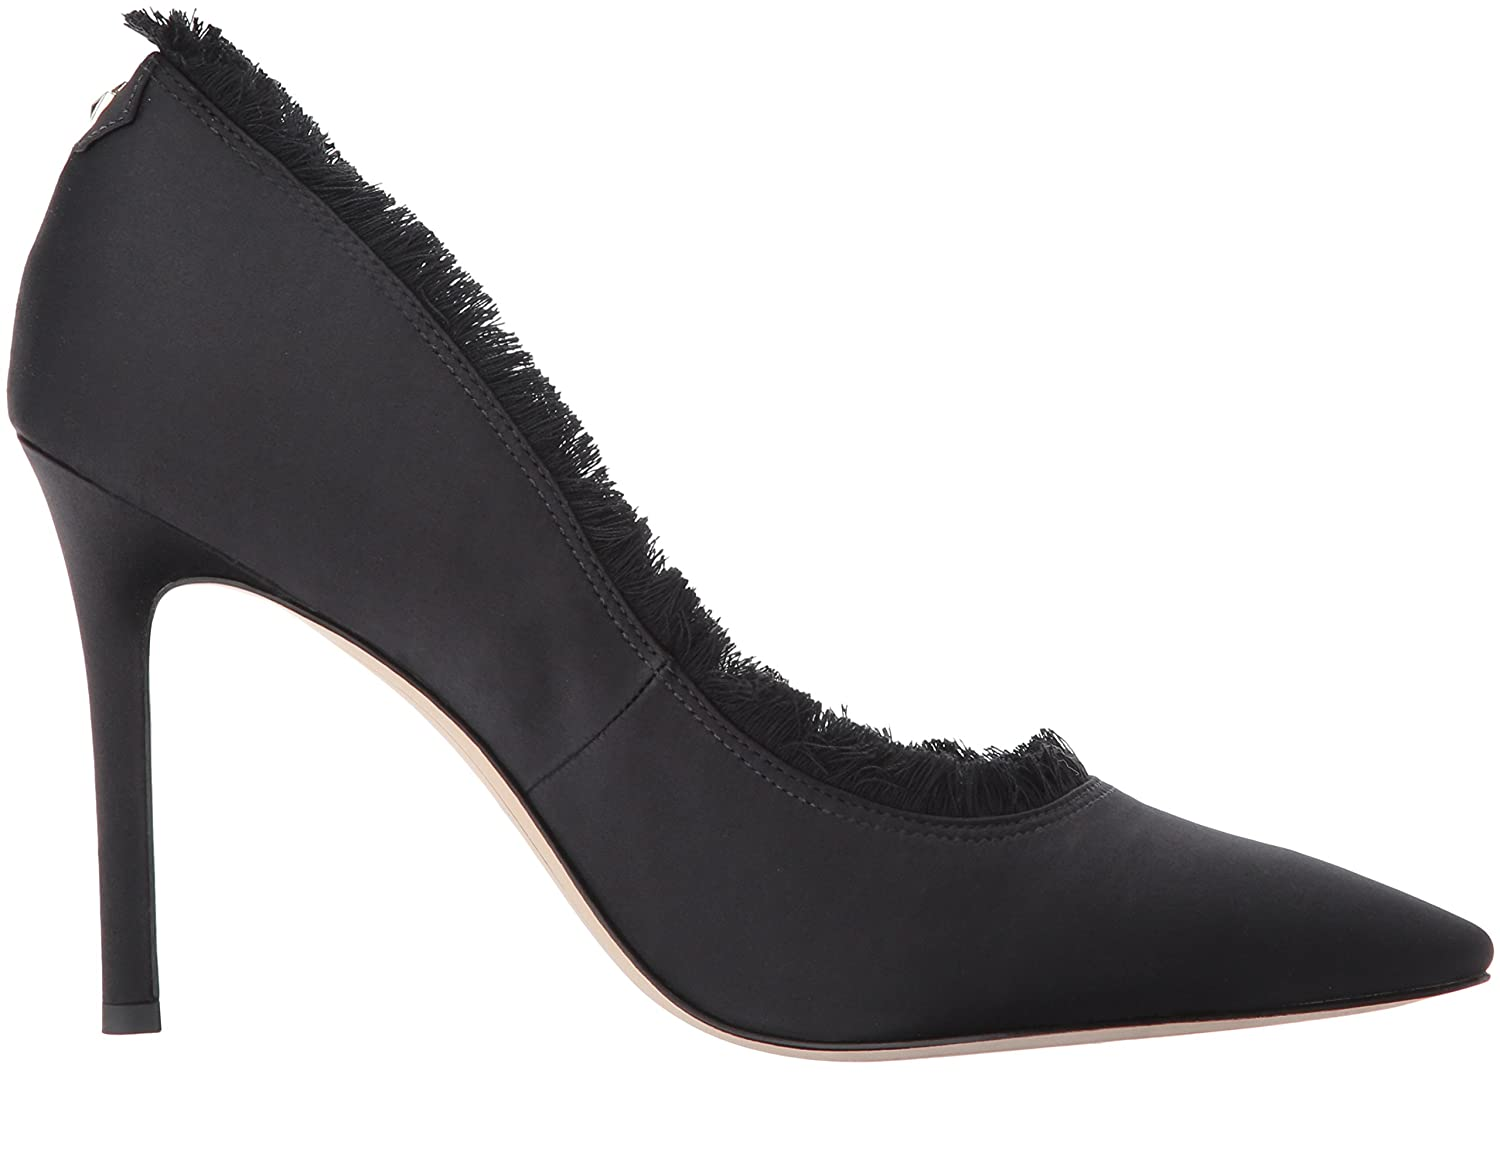 Sam Damen Edelman Damen Sam Halan Pumps, Schwarz (Black) 3b3622